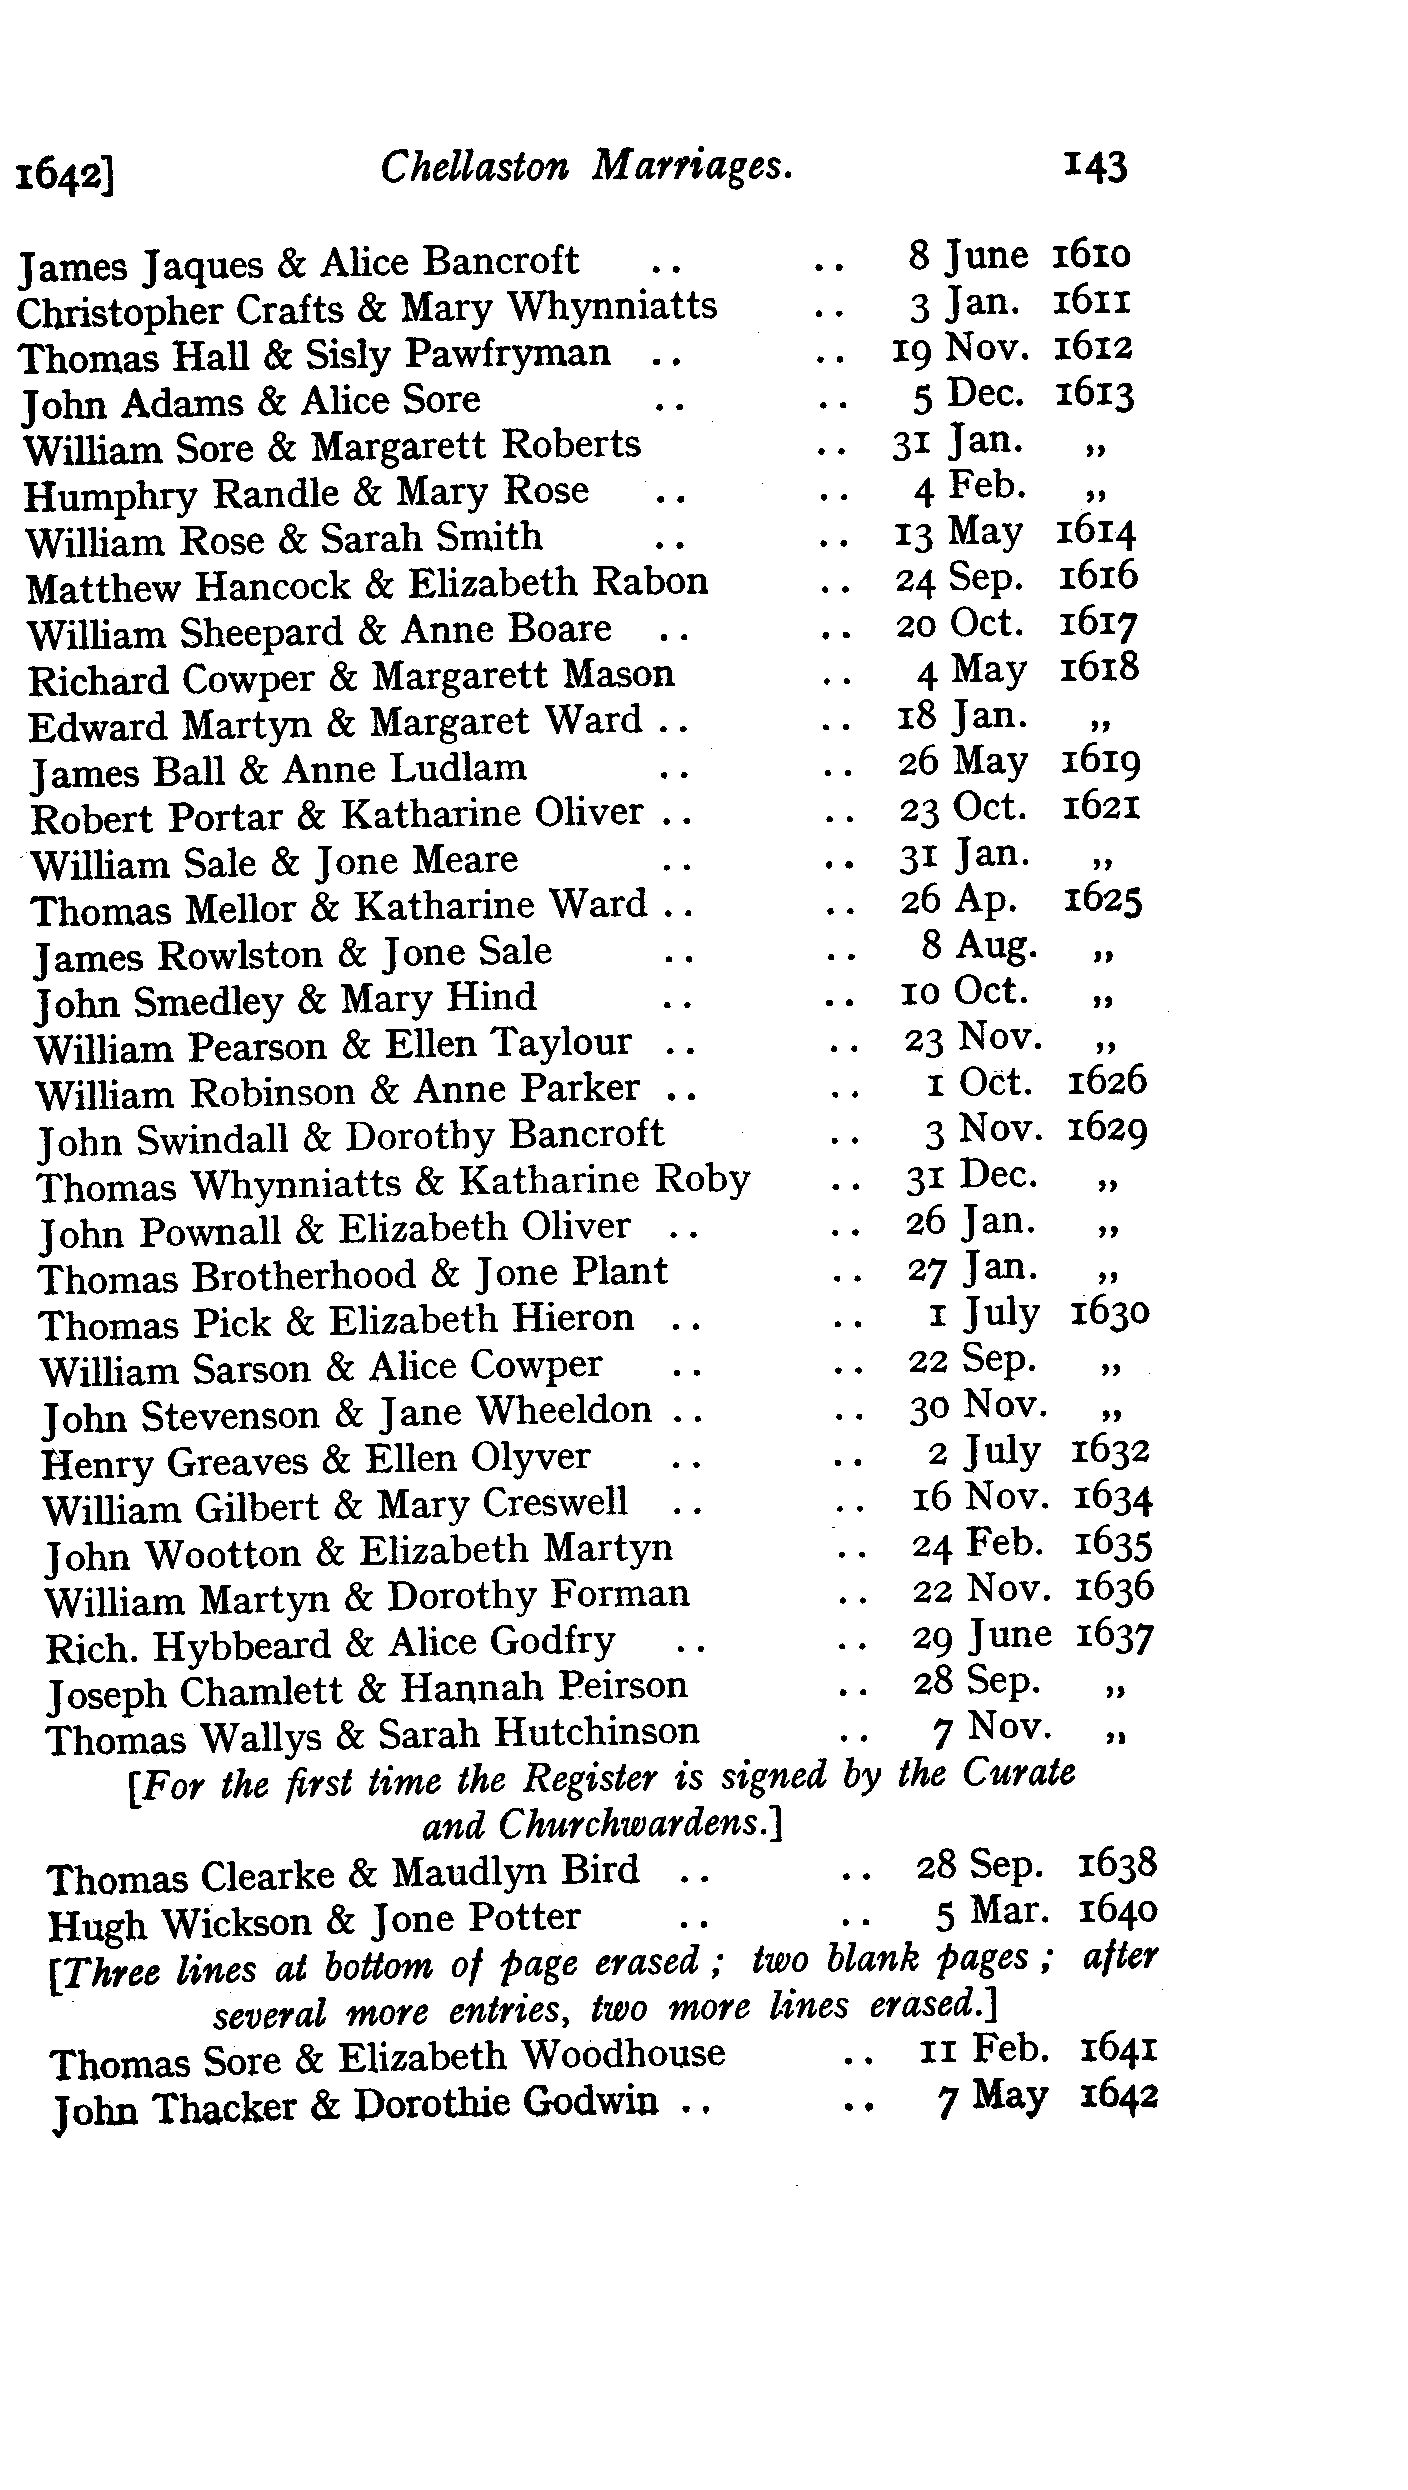 Derbyshire Parish Registers - Marriages volume 6 page 140 - click to open larger version in a new window